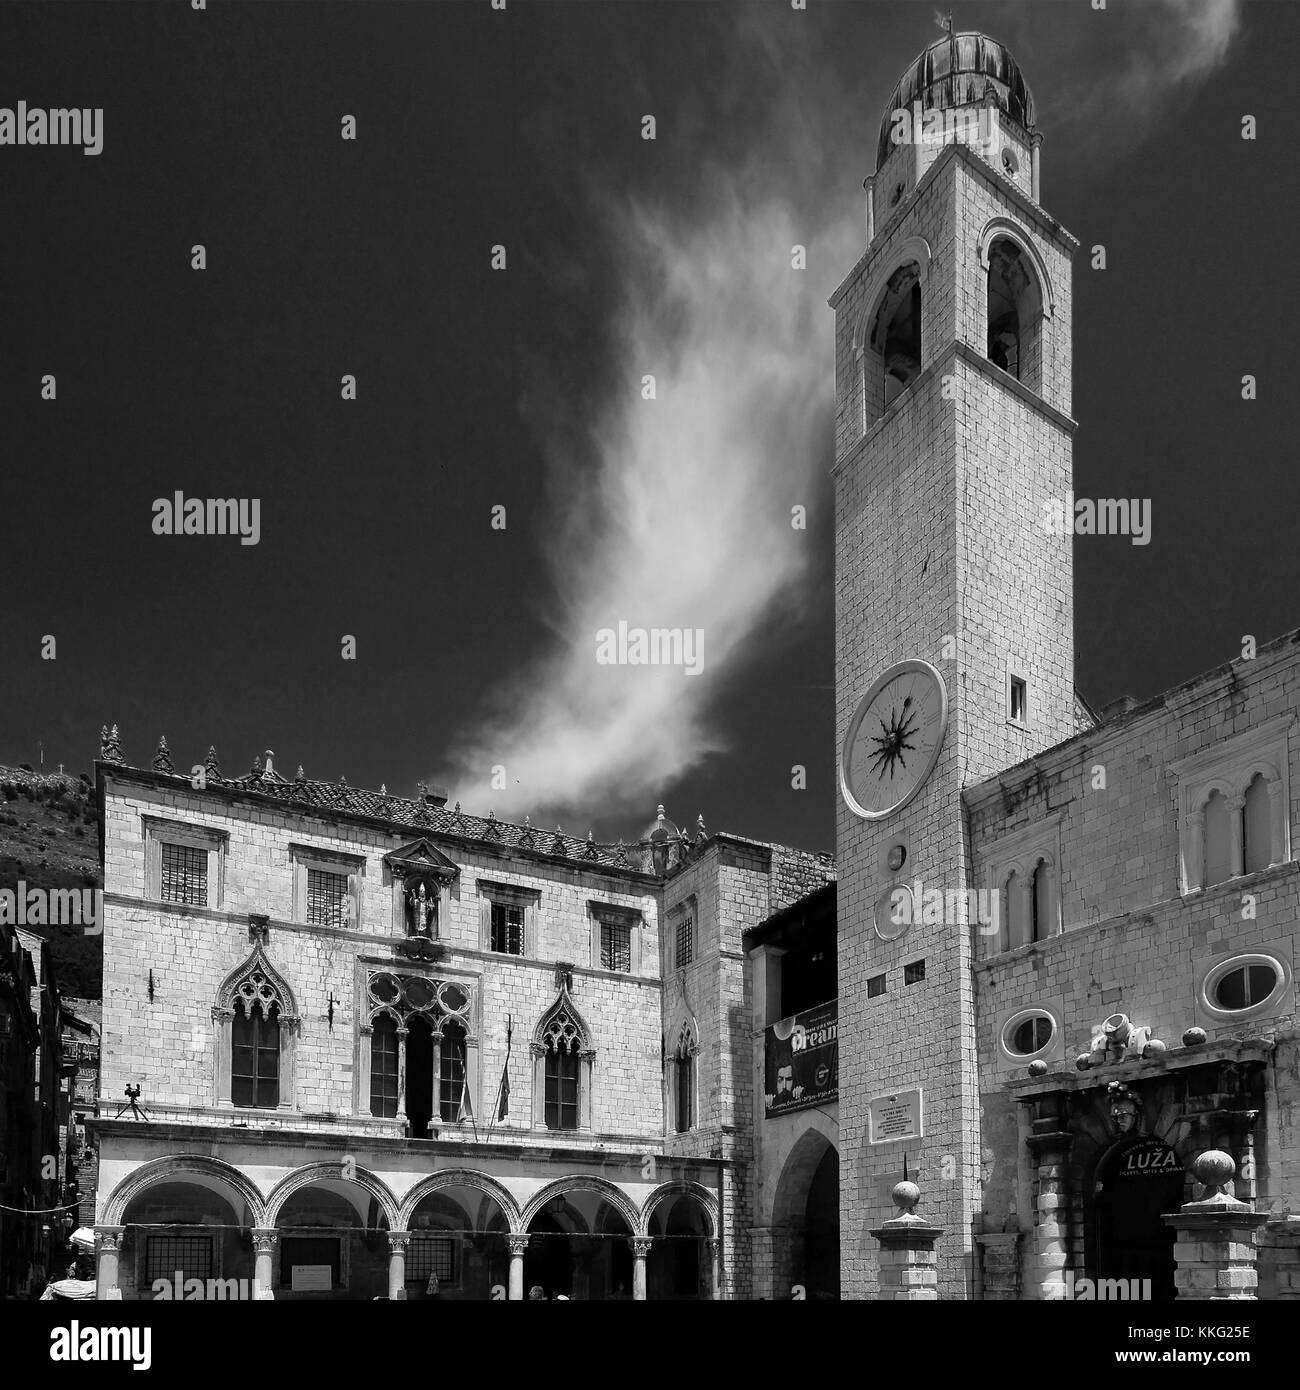 Summer, The Bell tower of the Dominican Monastery, Main Street of Dubrovnik, Dubrovnik-Neretva County, Dalmatian - Stock Image